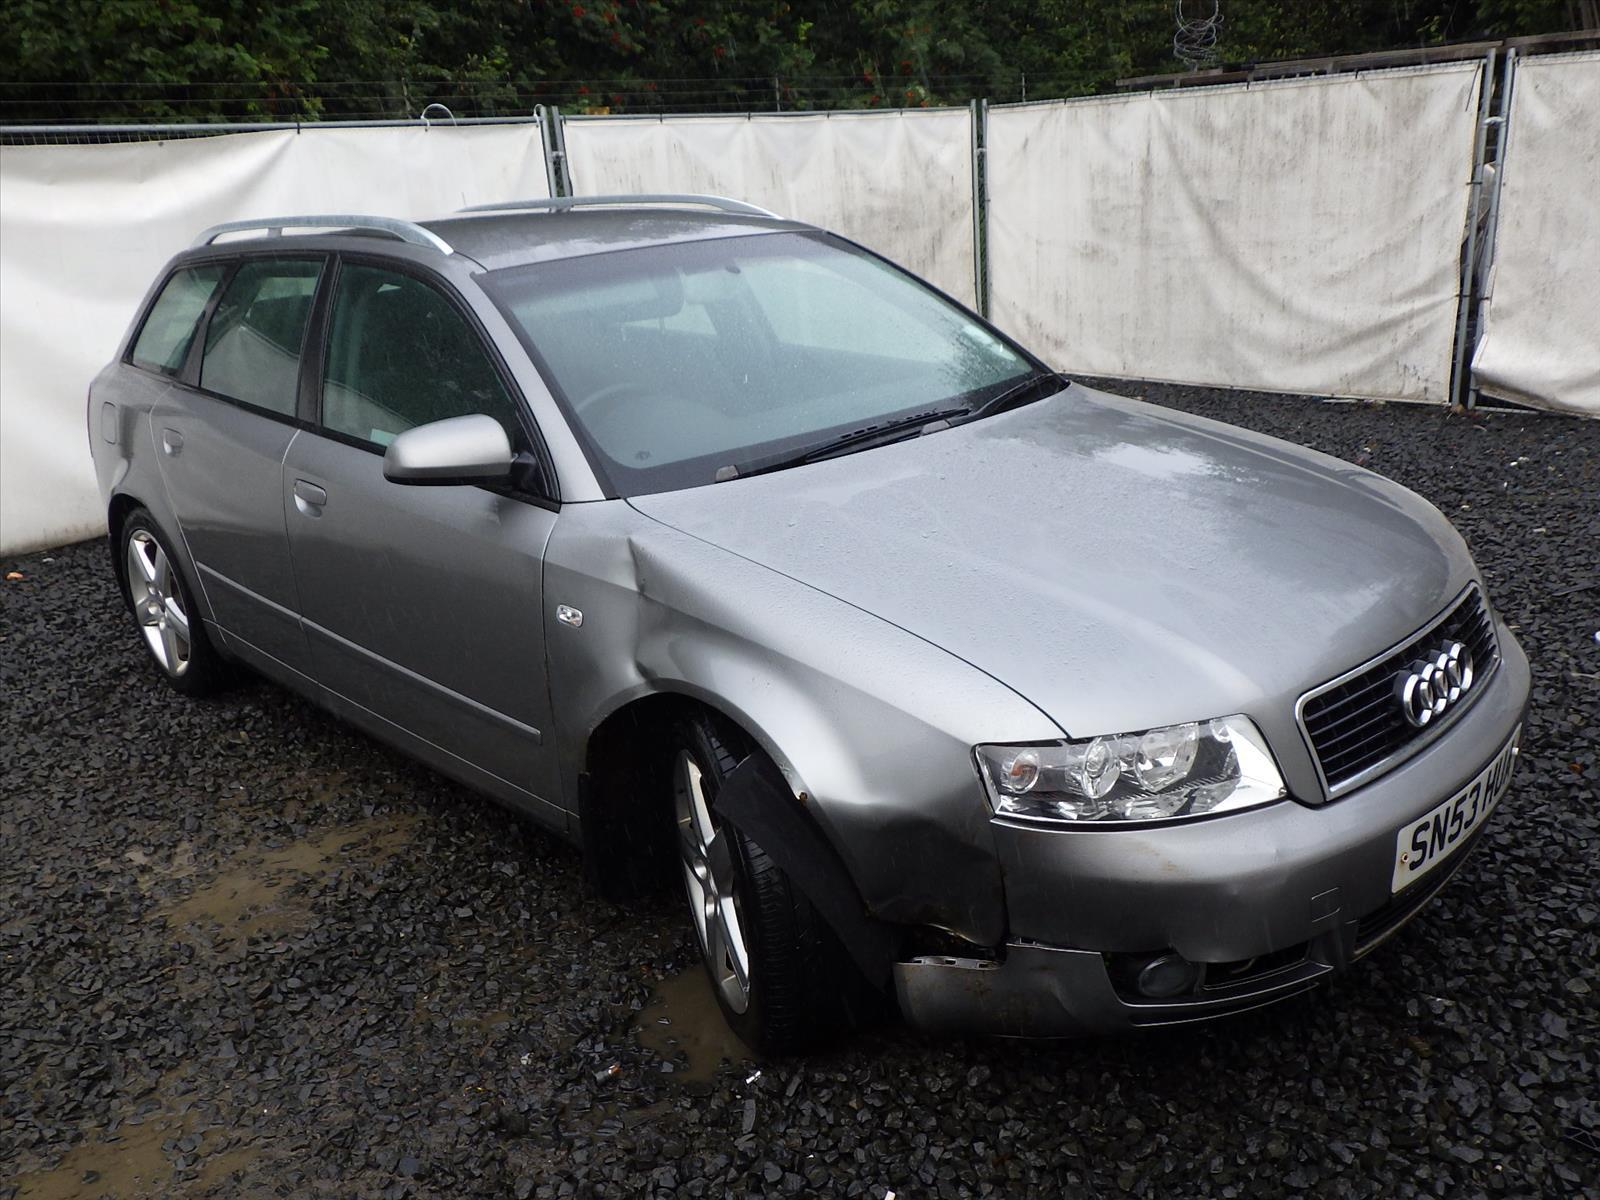 audi a4 2001 to 2005 wiper motor rear diesel manual for sale rh scbvehicledismantlers co uk Audi A4 6-Speed Manual 2004 Audi A4 Owner's Manual